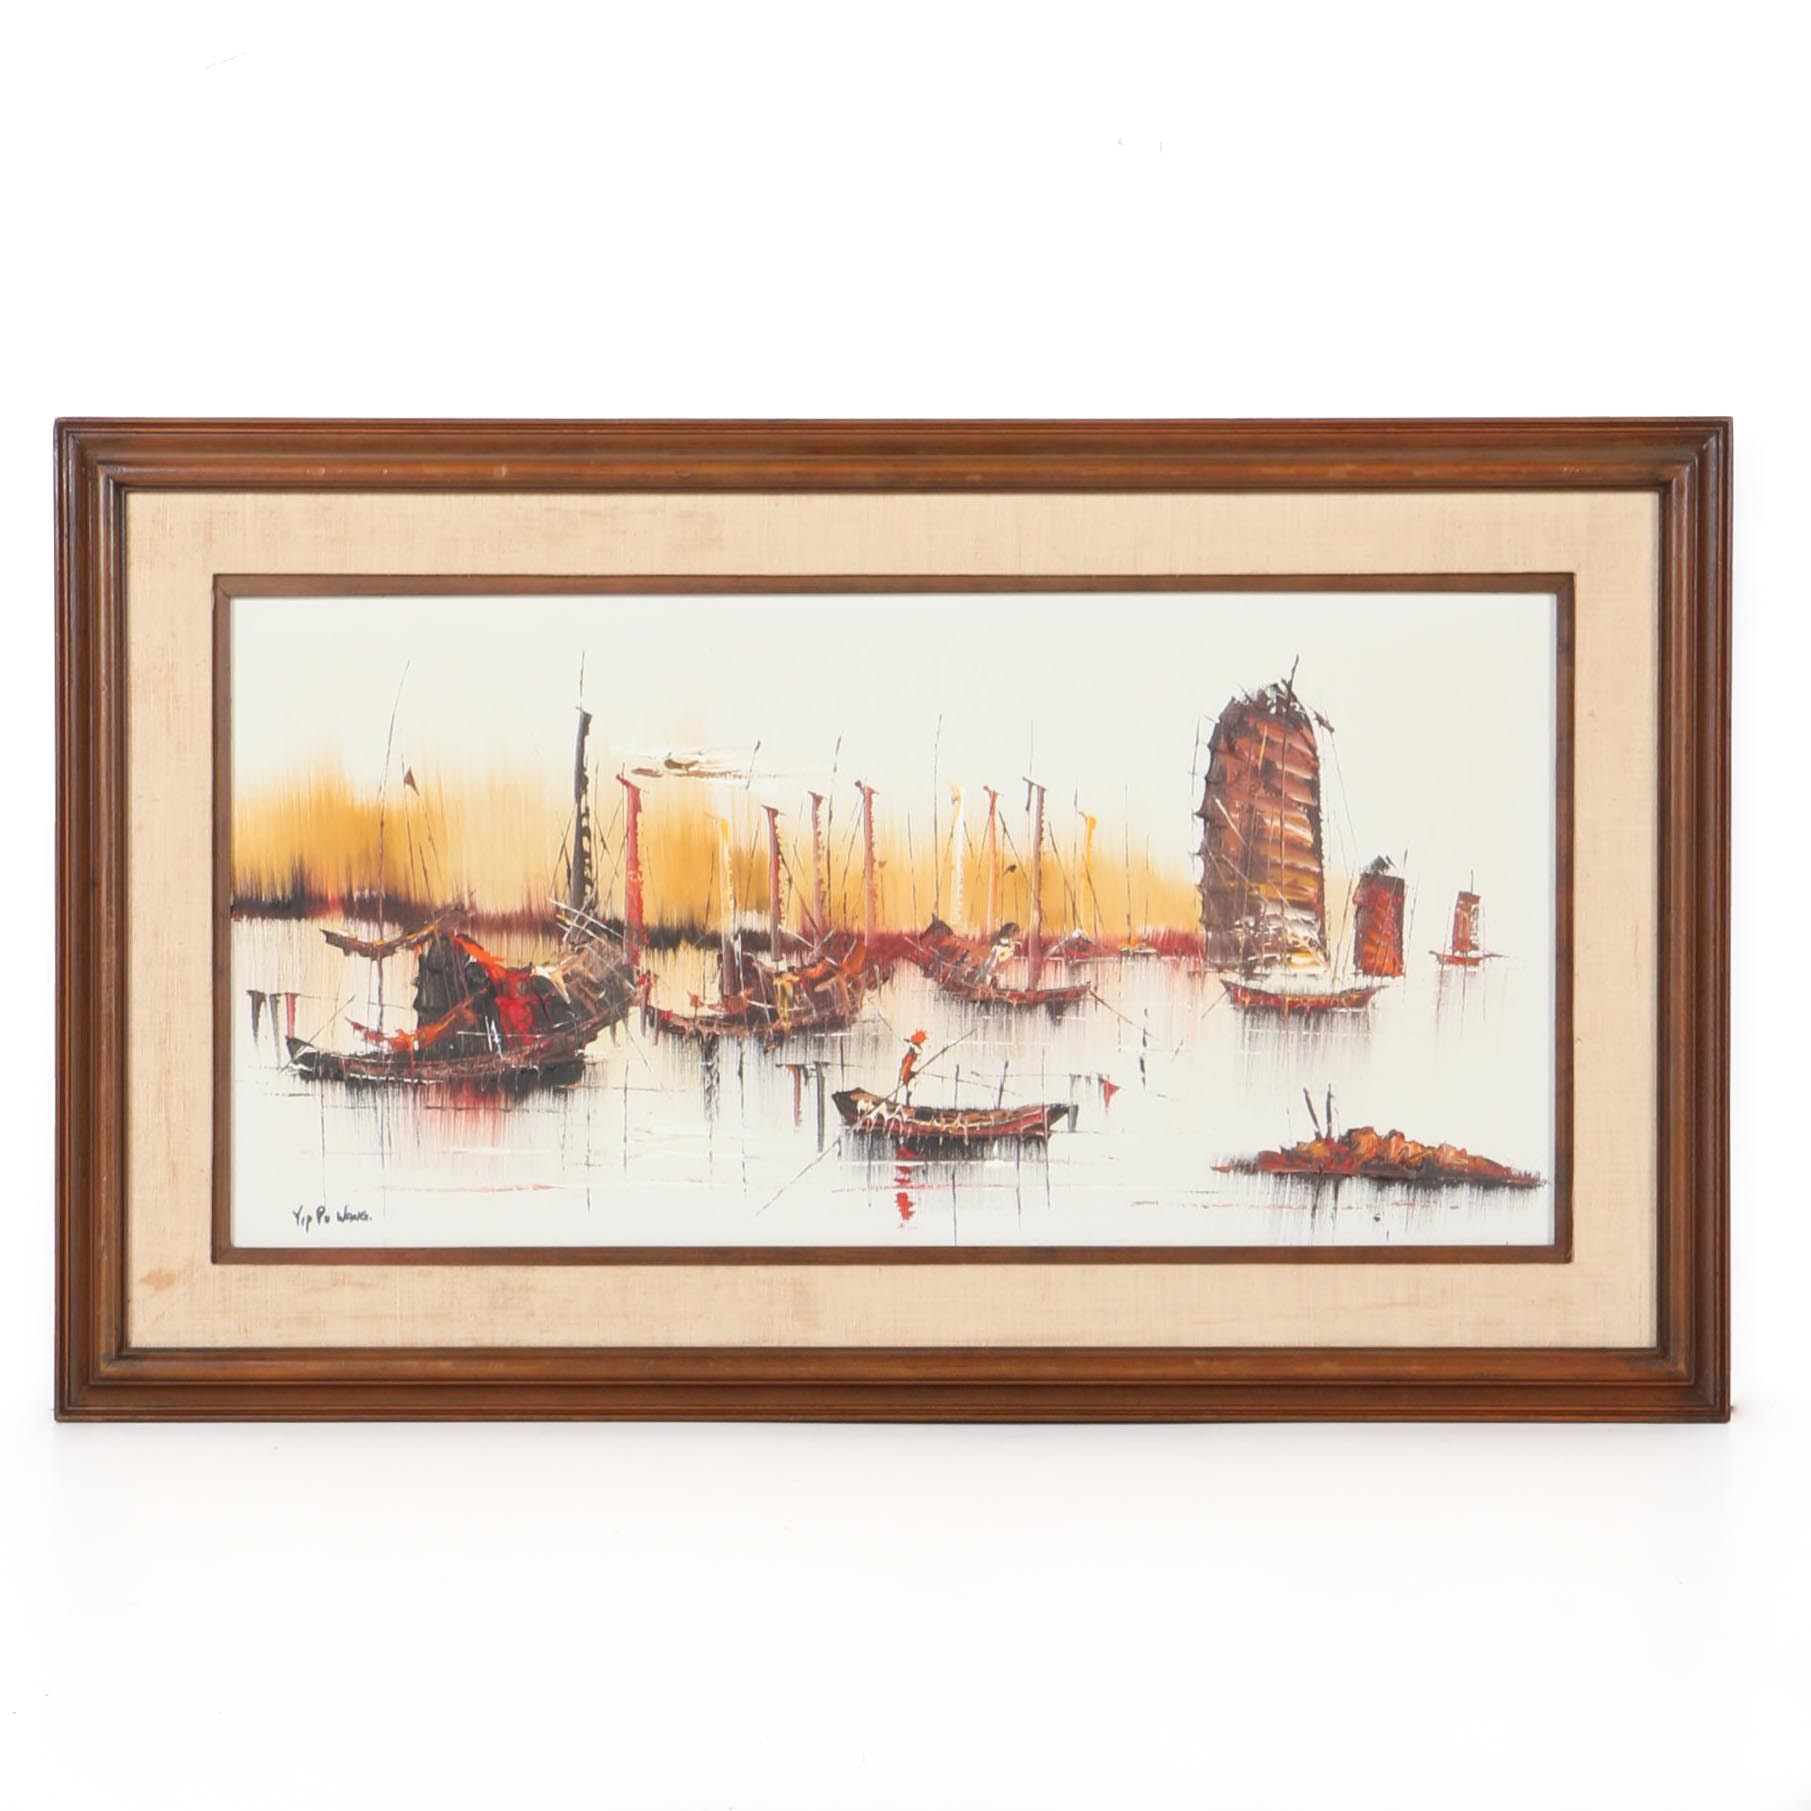 Yip Po Wang Oil Painting of Boats on the Water